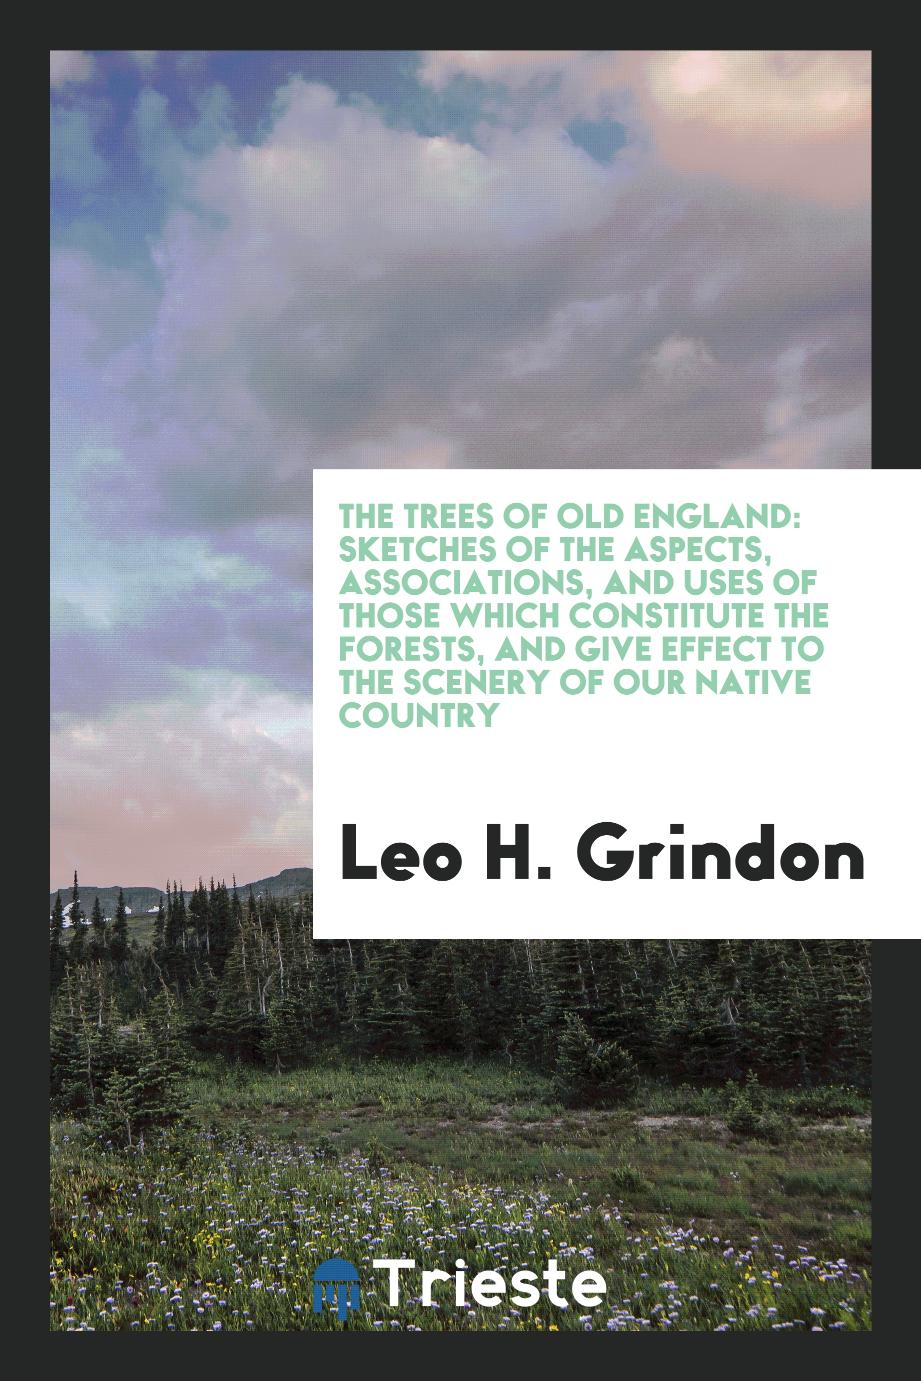 Leo H. Grindon - The trees of old England: sketches of the aspects, associations, and uses of those which constitute the forests, and give effect to the scenery of our native country